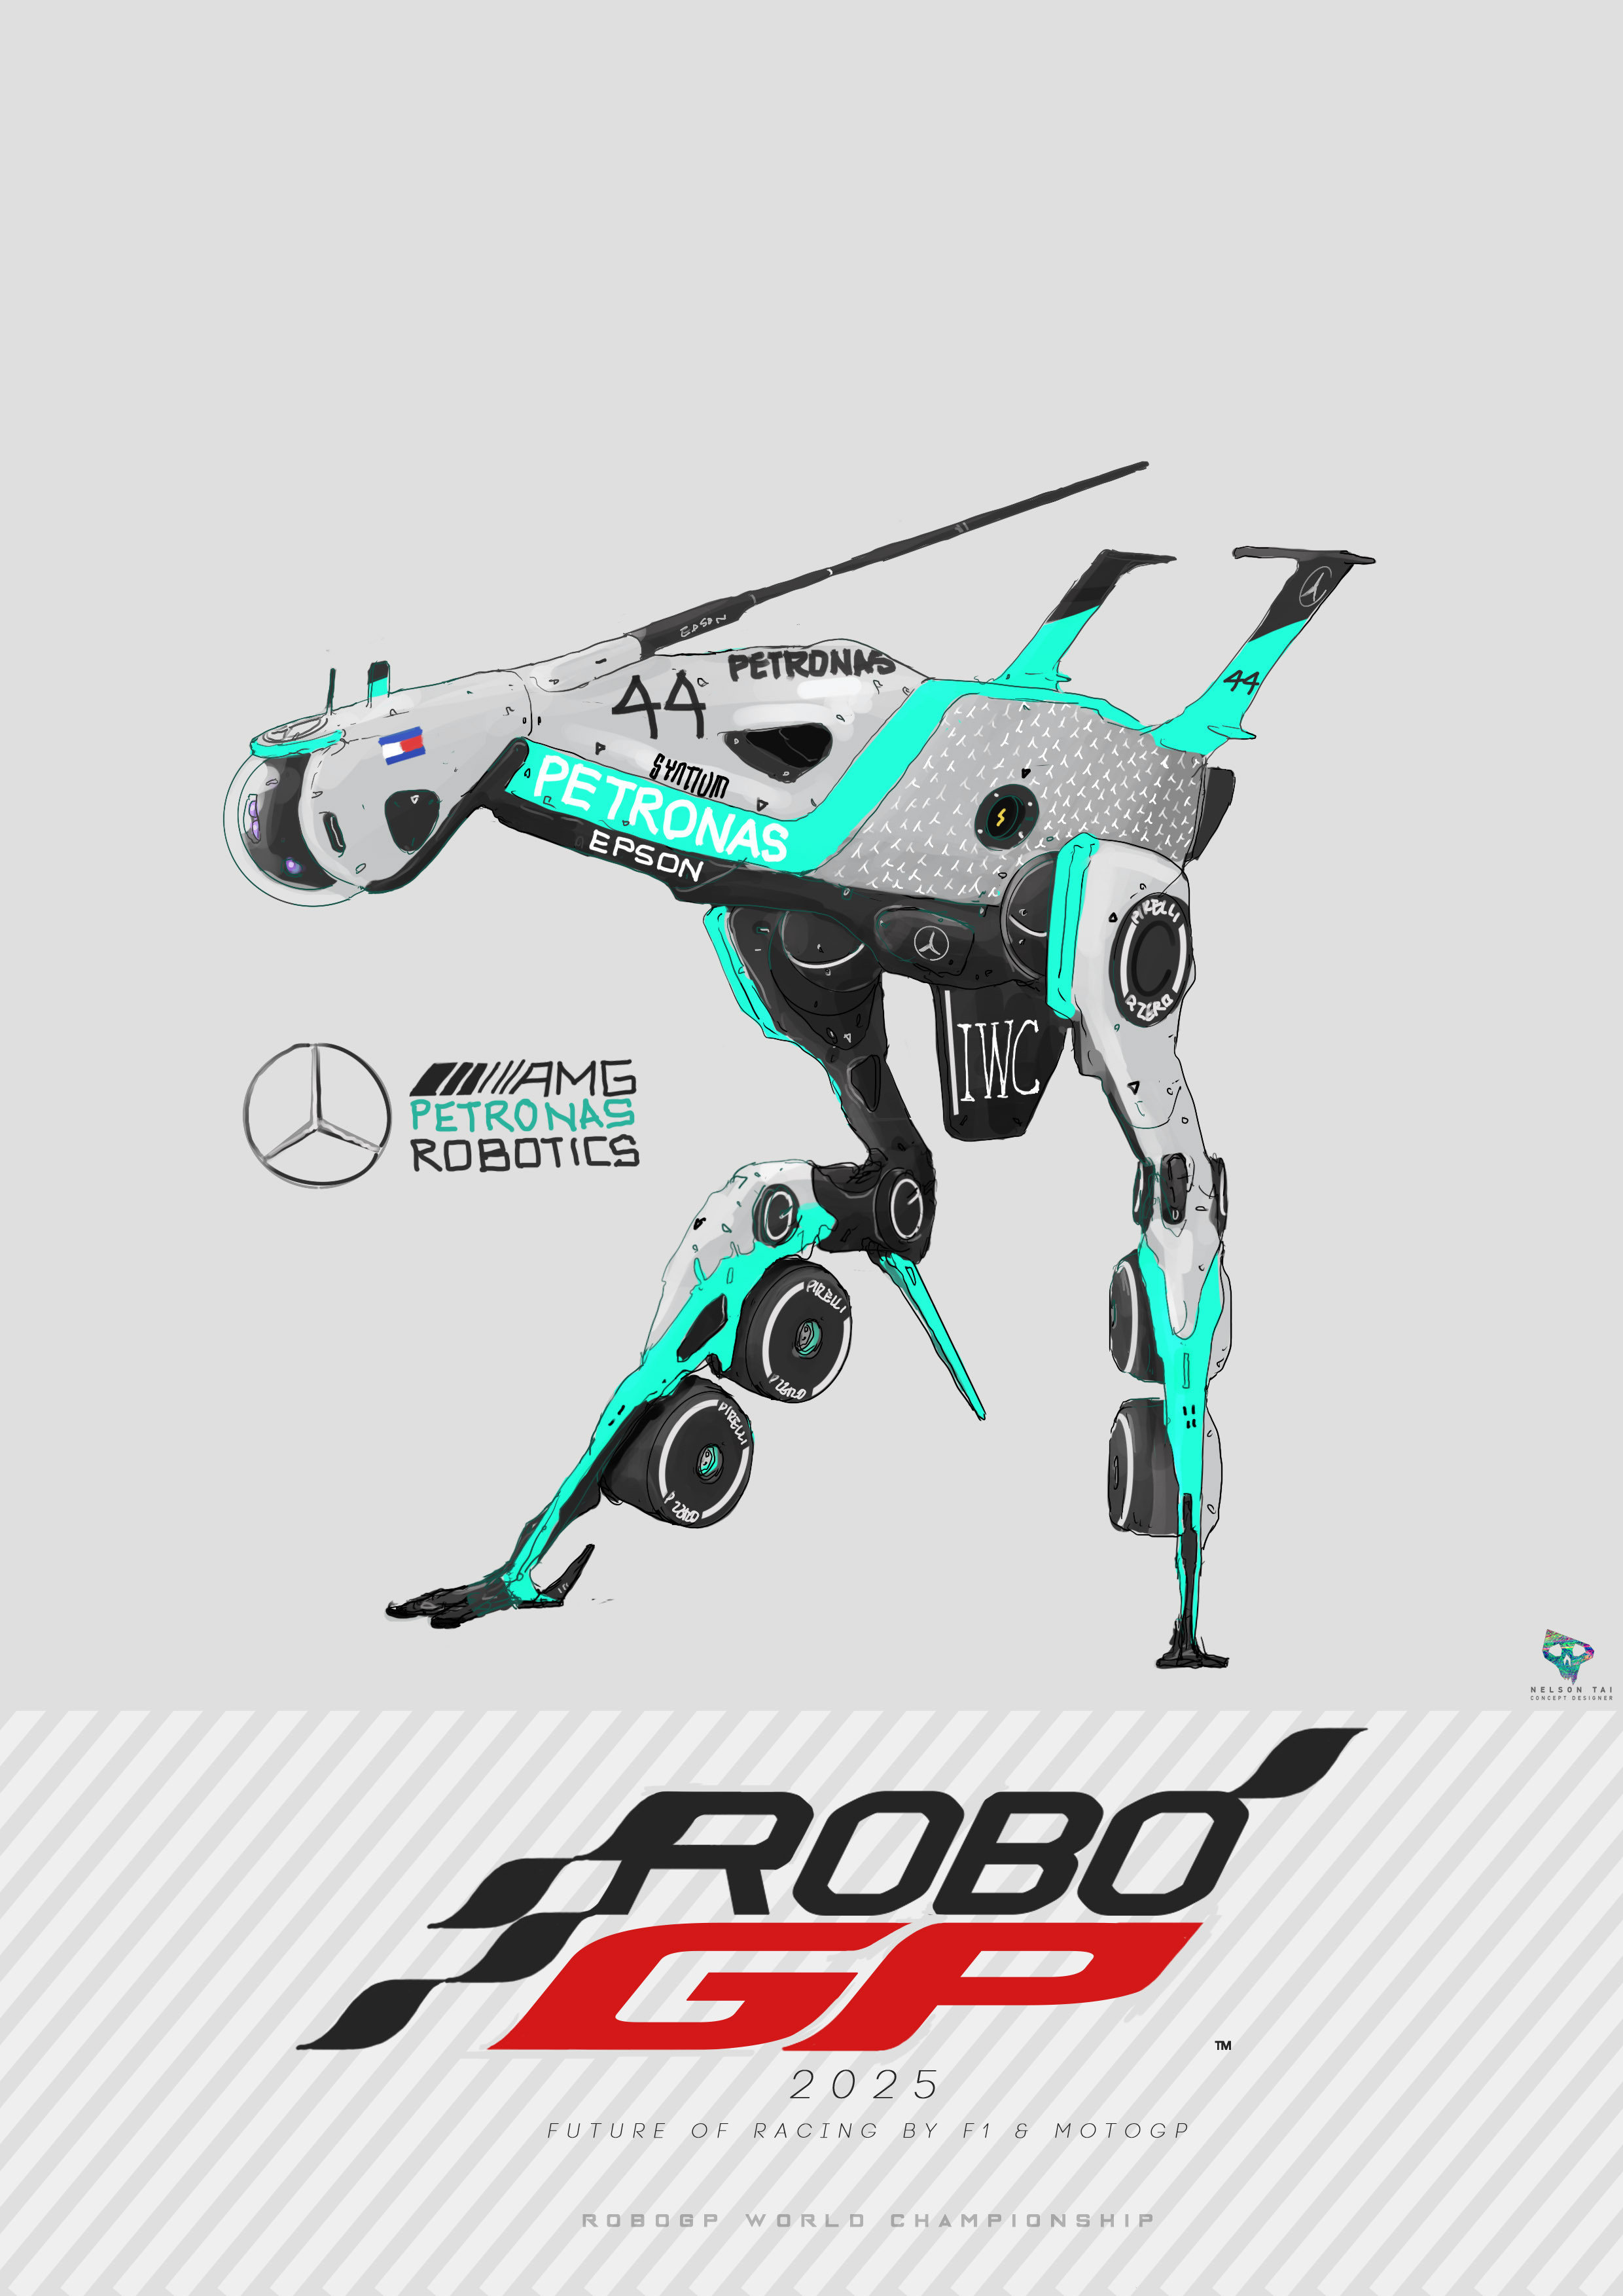 AMG Petronas Robotics | Runs on the data of 6-time World Champion - Lewis Hamilton